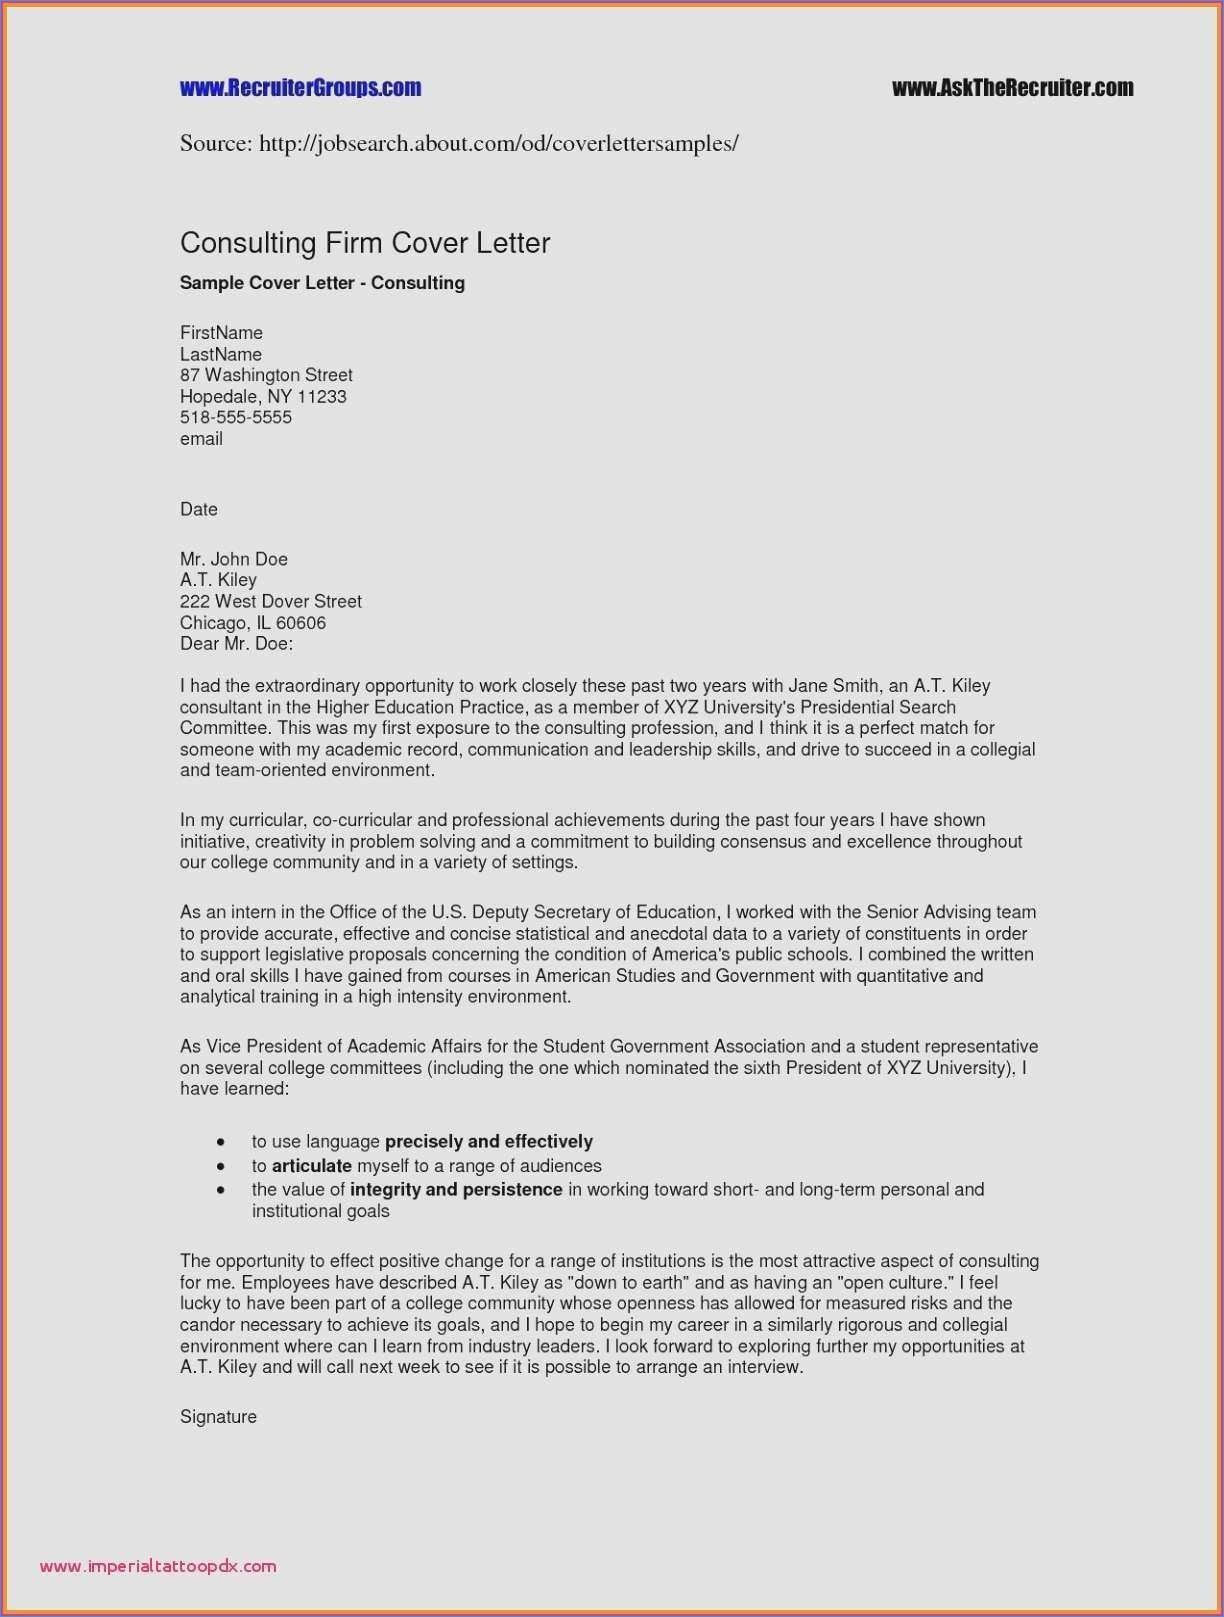 Leadership Experience Resume Examples Inspirational New Non Executive Director Resume Examples Cover Letter For Resume Cover Letter Sample Cover Letter Example